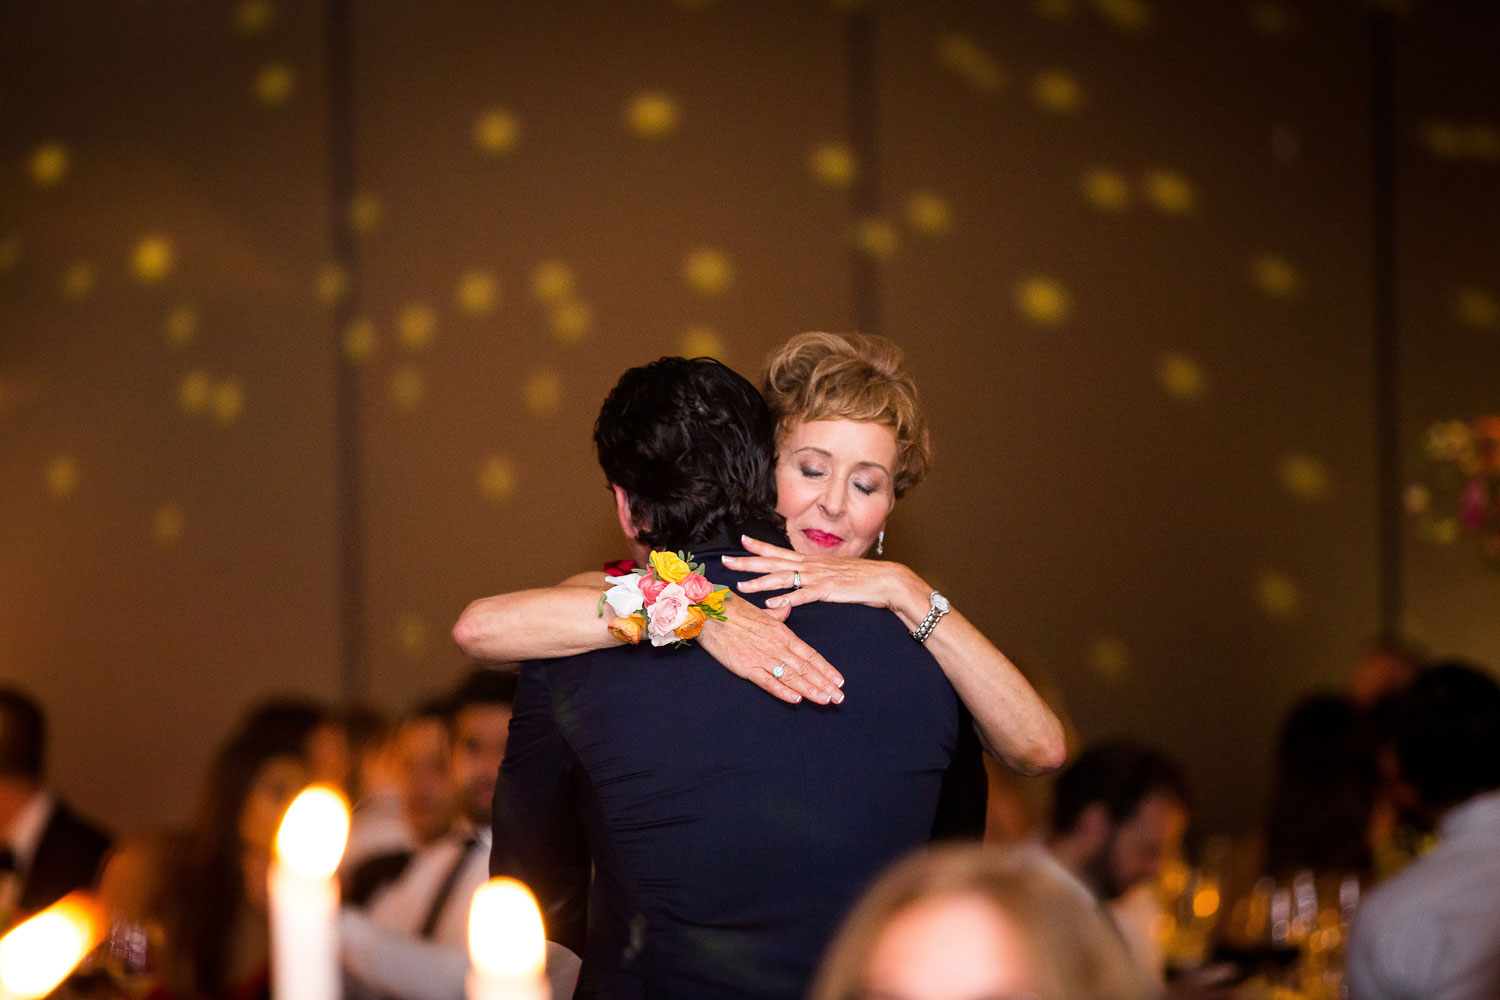 upbeat songs for the mother-son dance